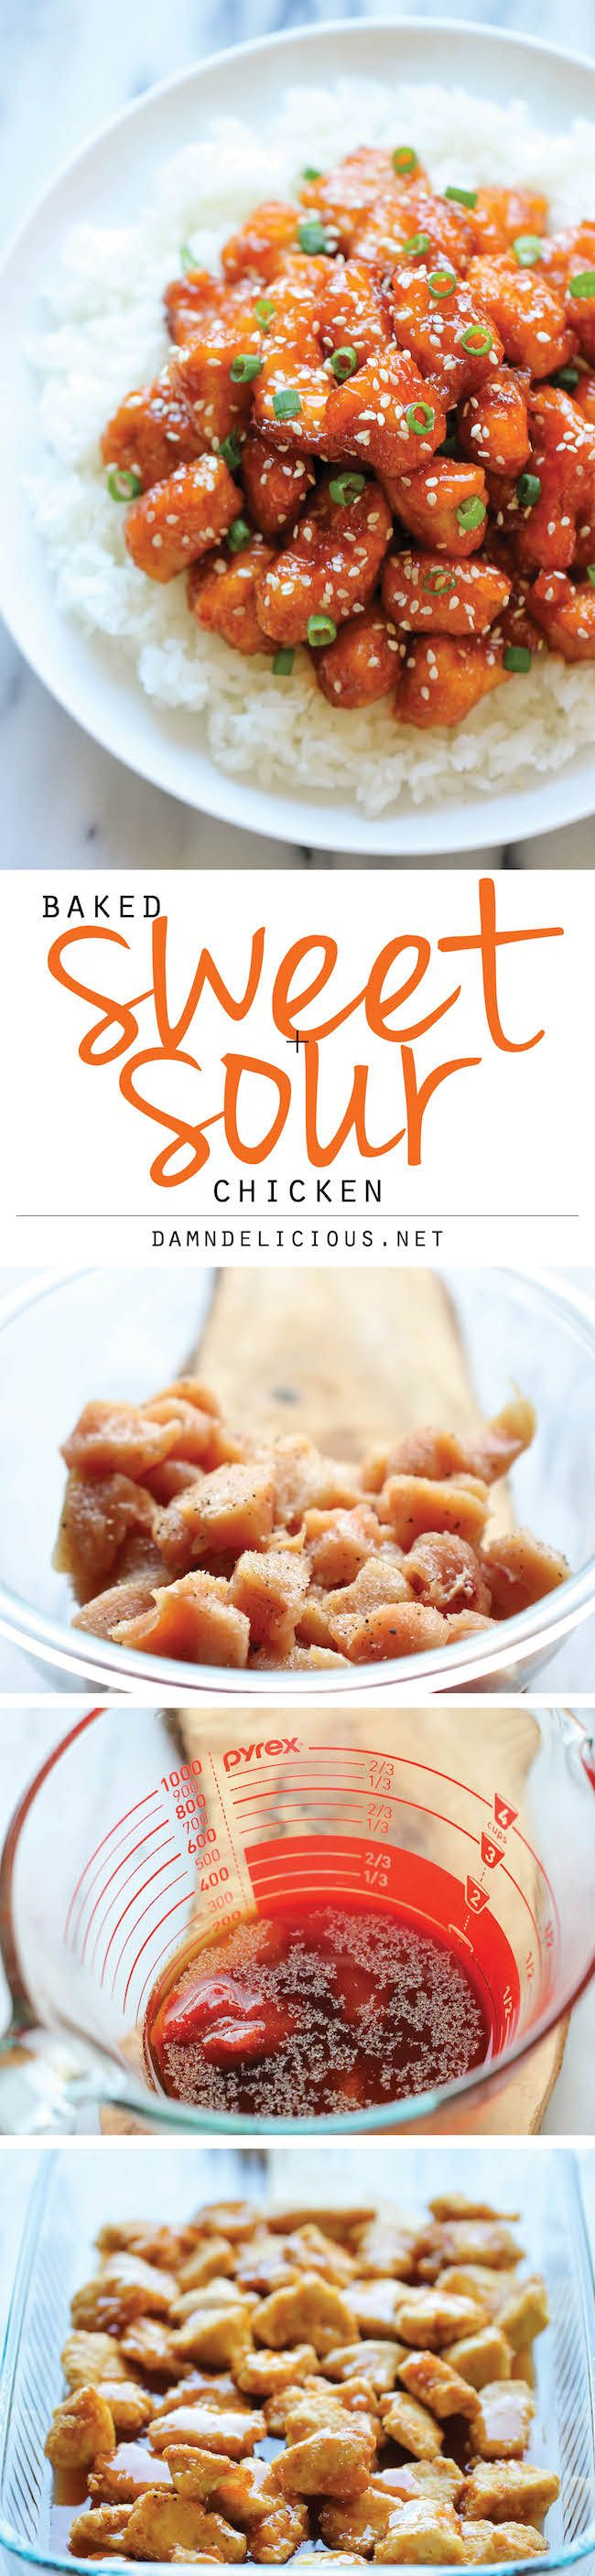 Baked Sweet and Sour Chicken - No need to order take-out anymore - this homemade version is so much healthier and a million times tastier!